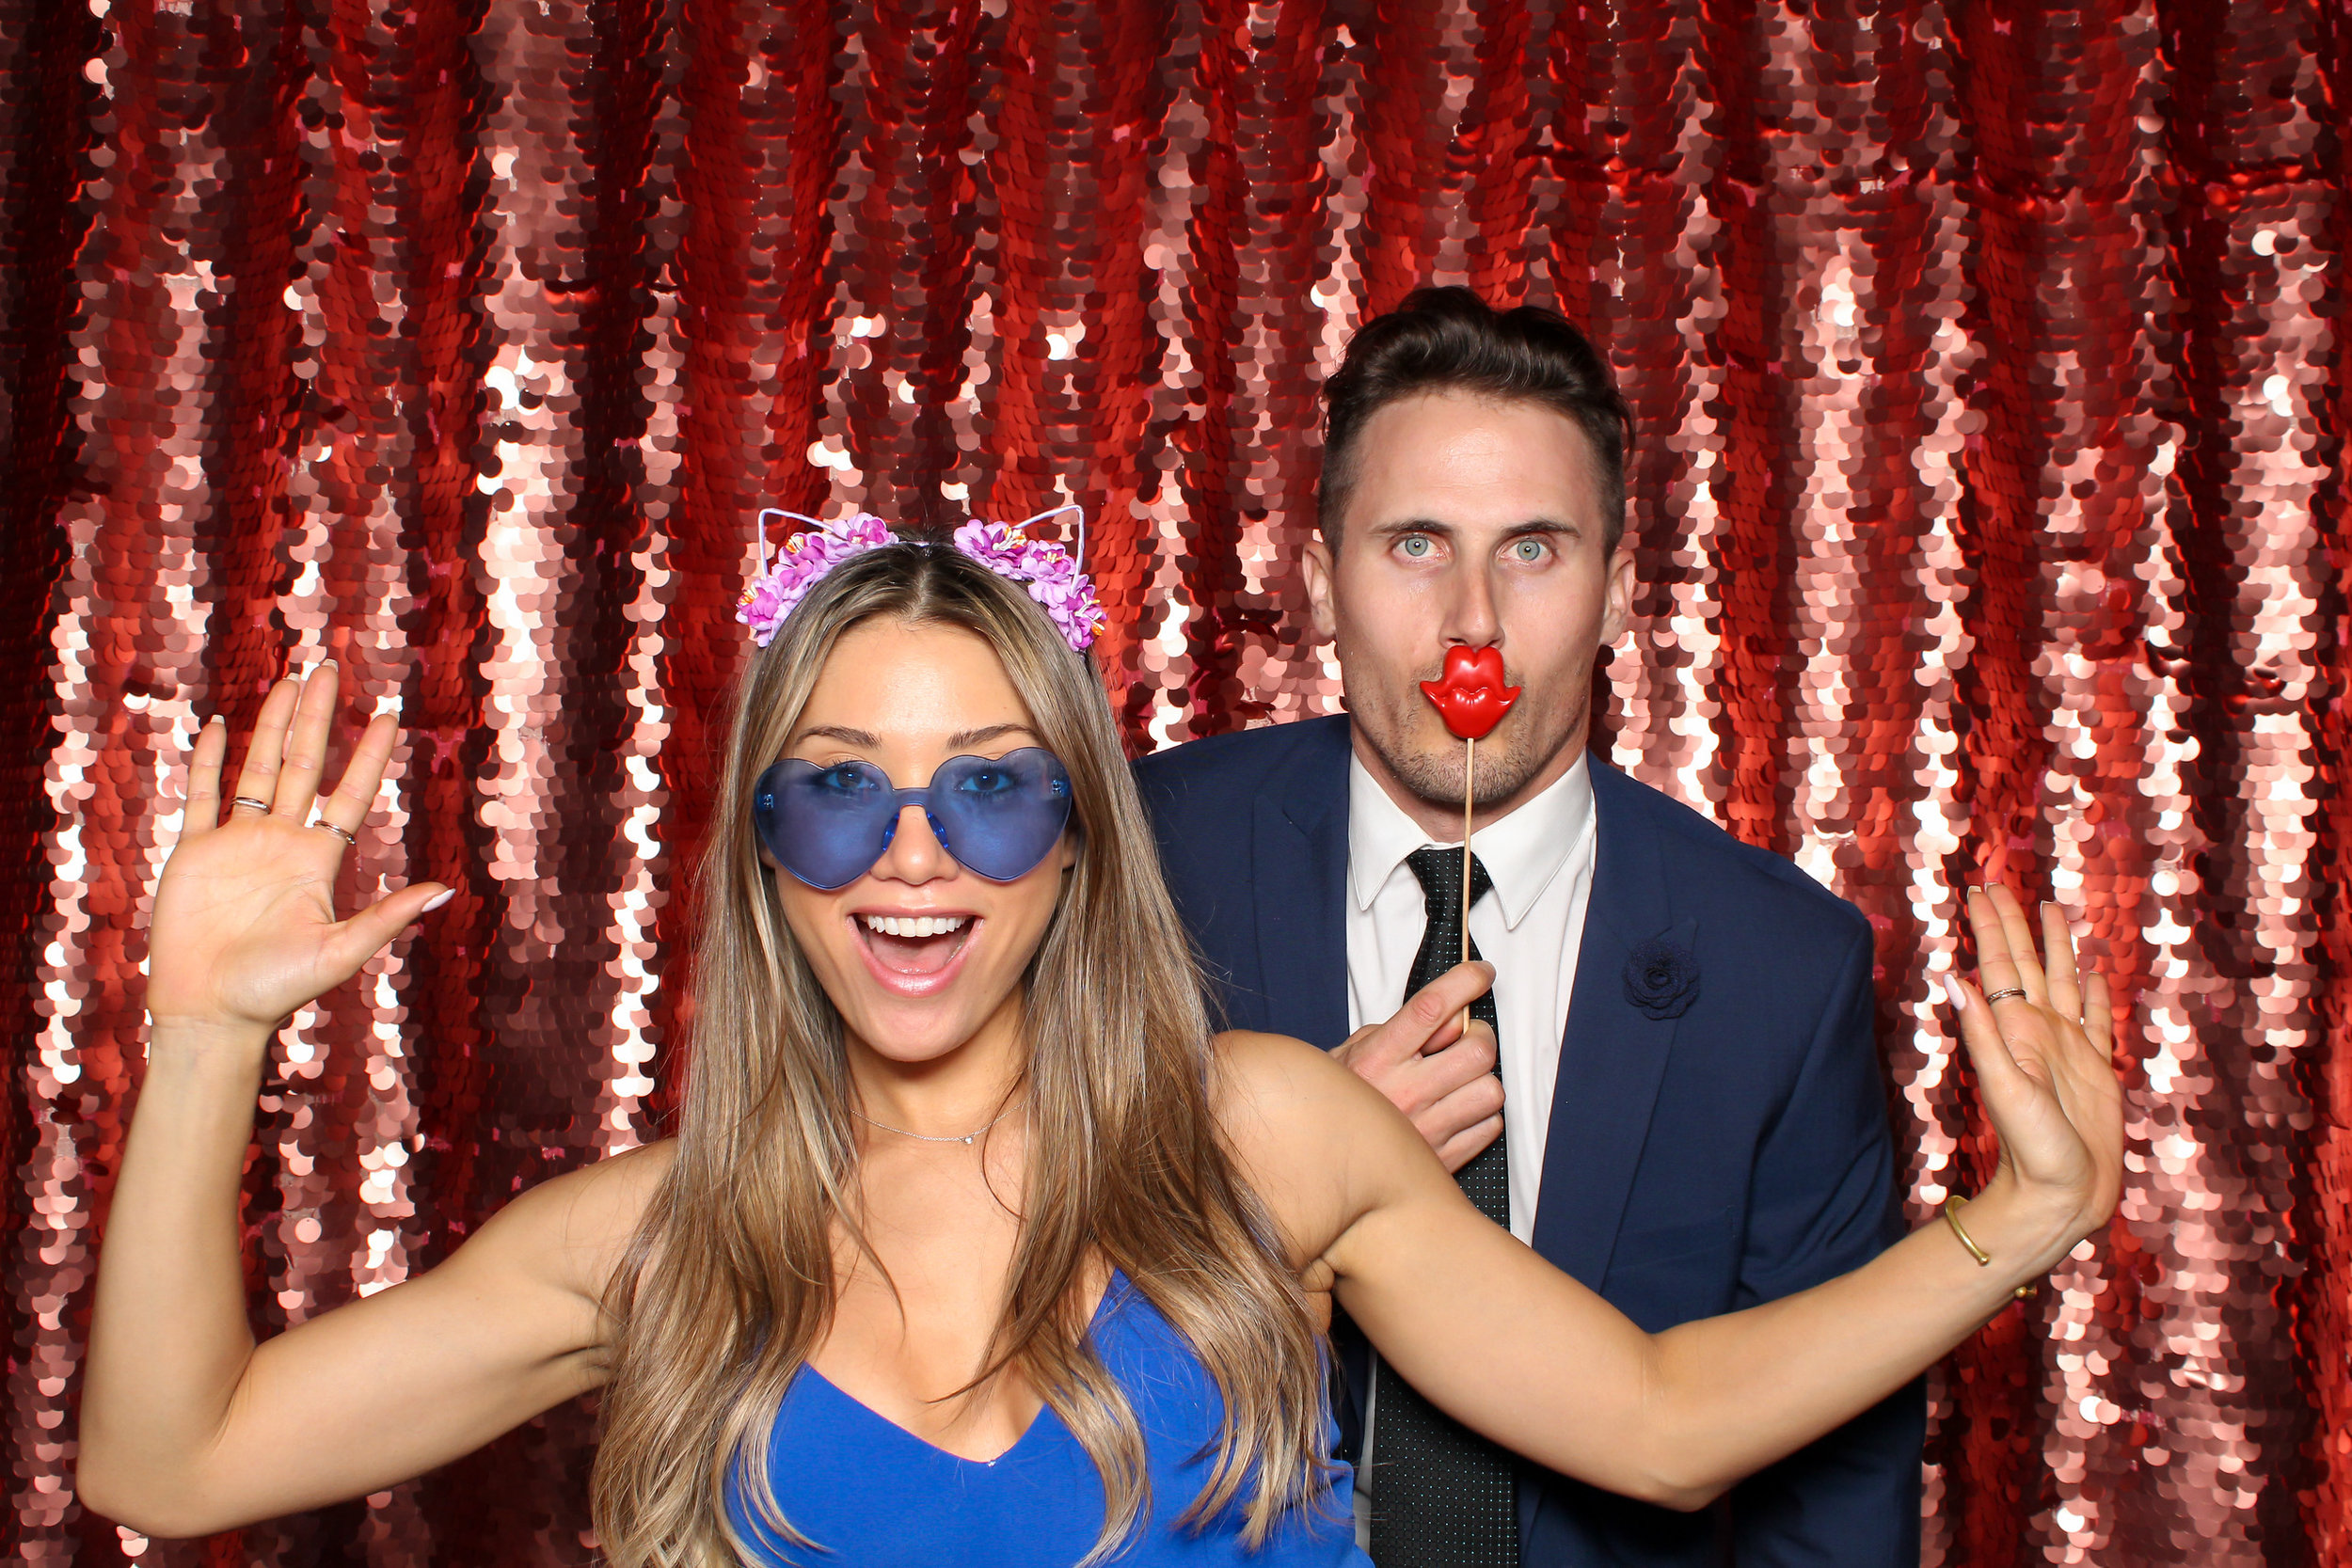 LOS GATOS DJ - Jess & Joe Nestldown Wedding - Wedding Guests in LG Photo Booth.jpg